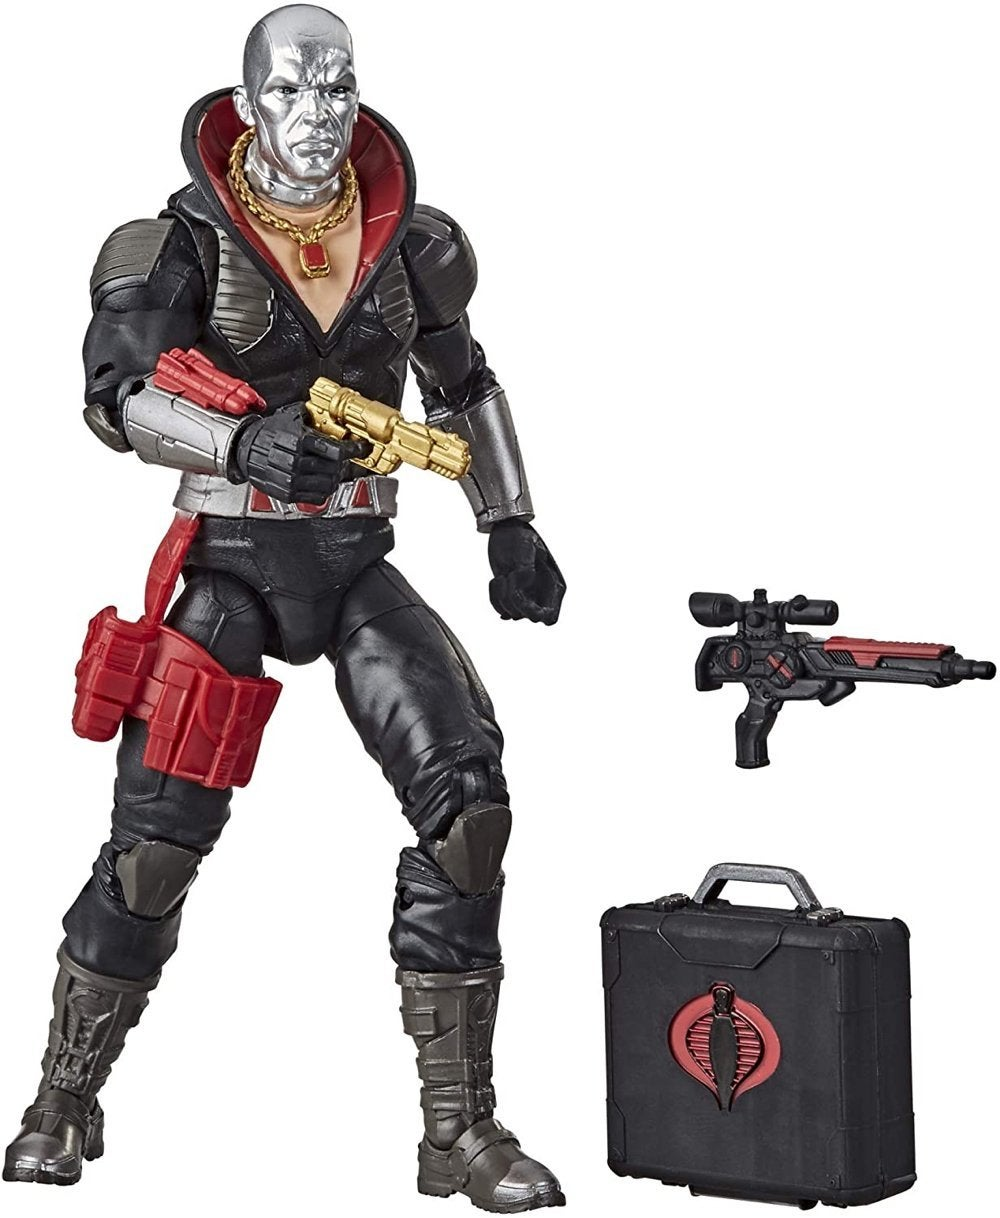 hasbro-gi-joe-destro-classified-figure